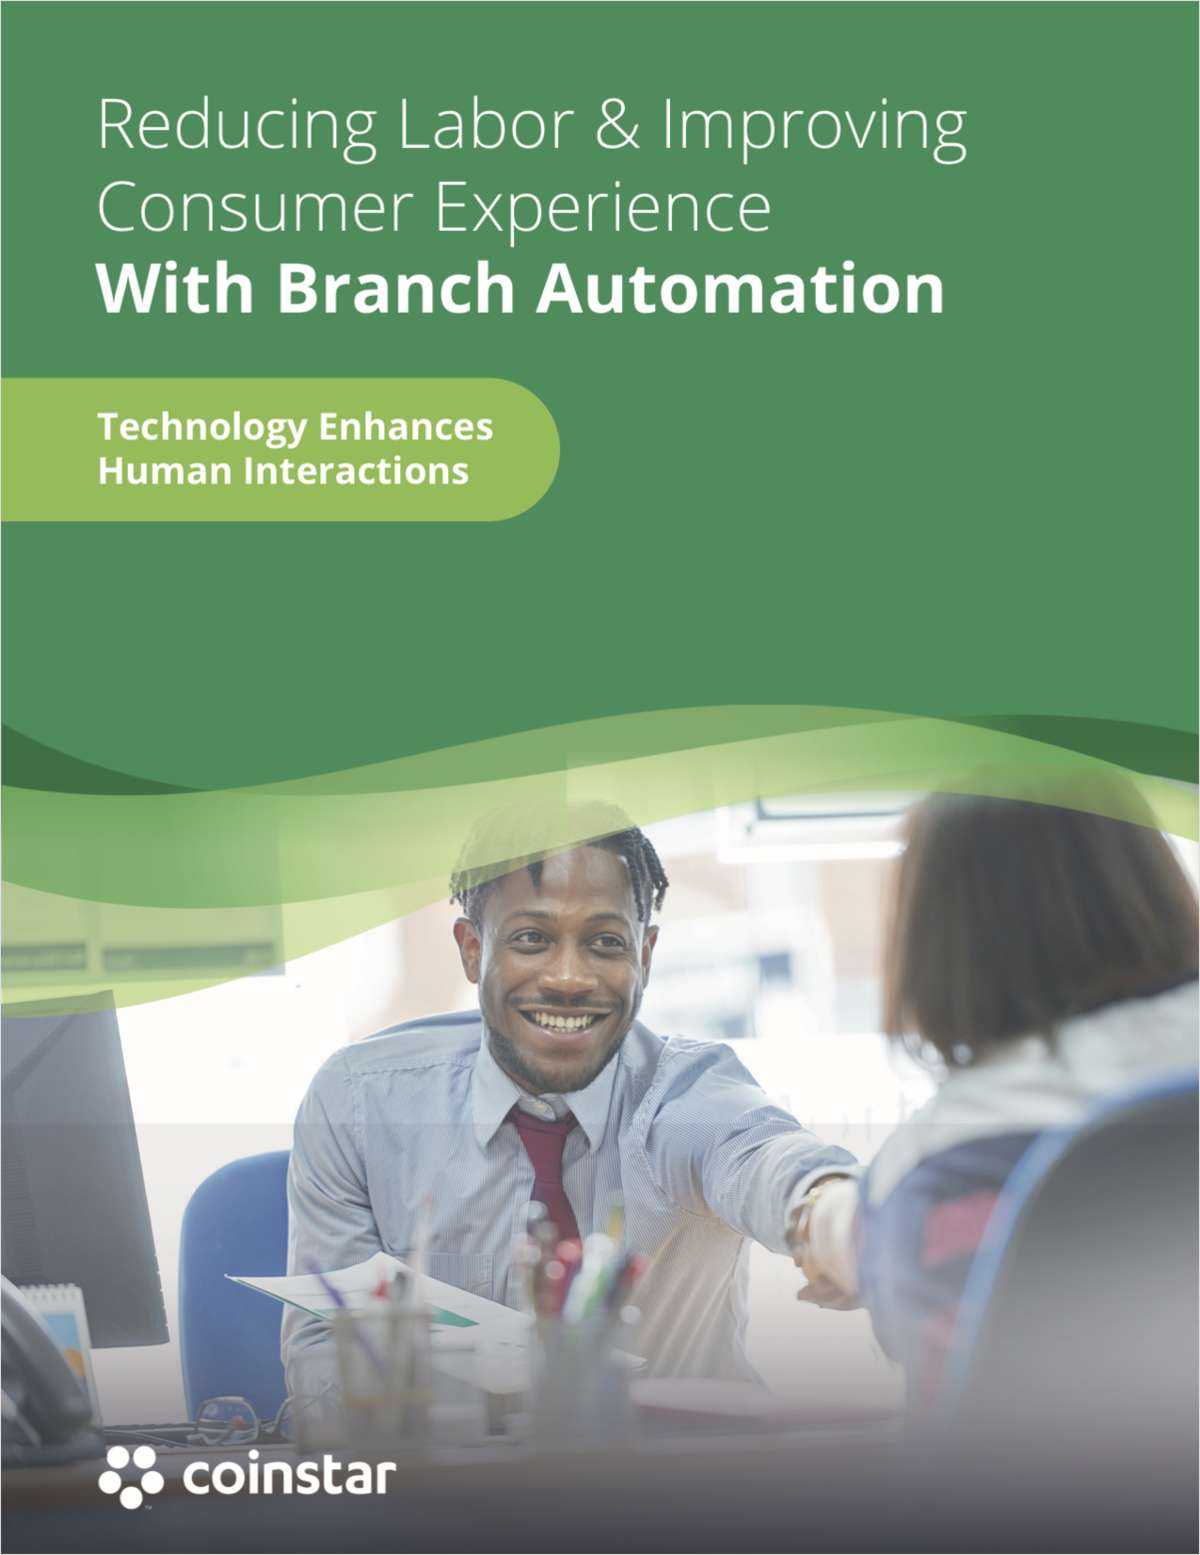 Reducing Labor & Improving Consumer Experience With Branch Automation